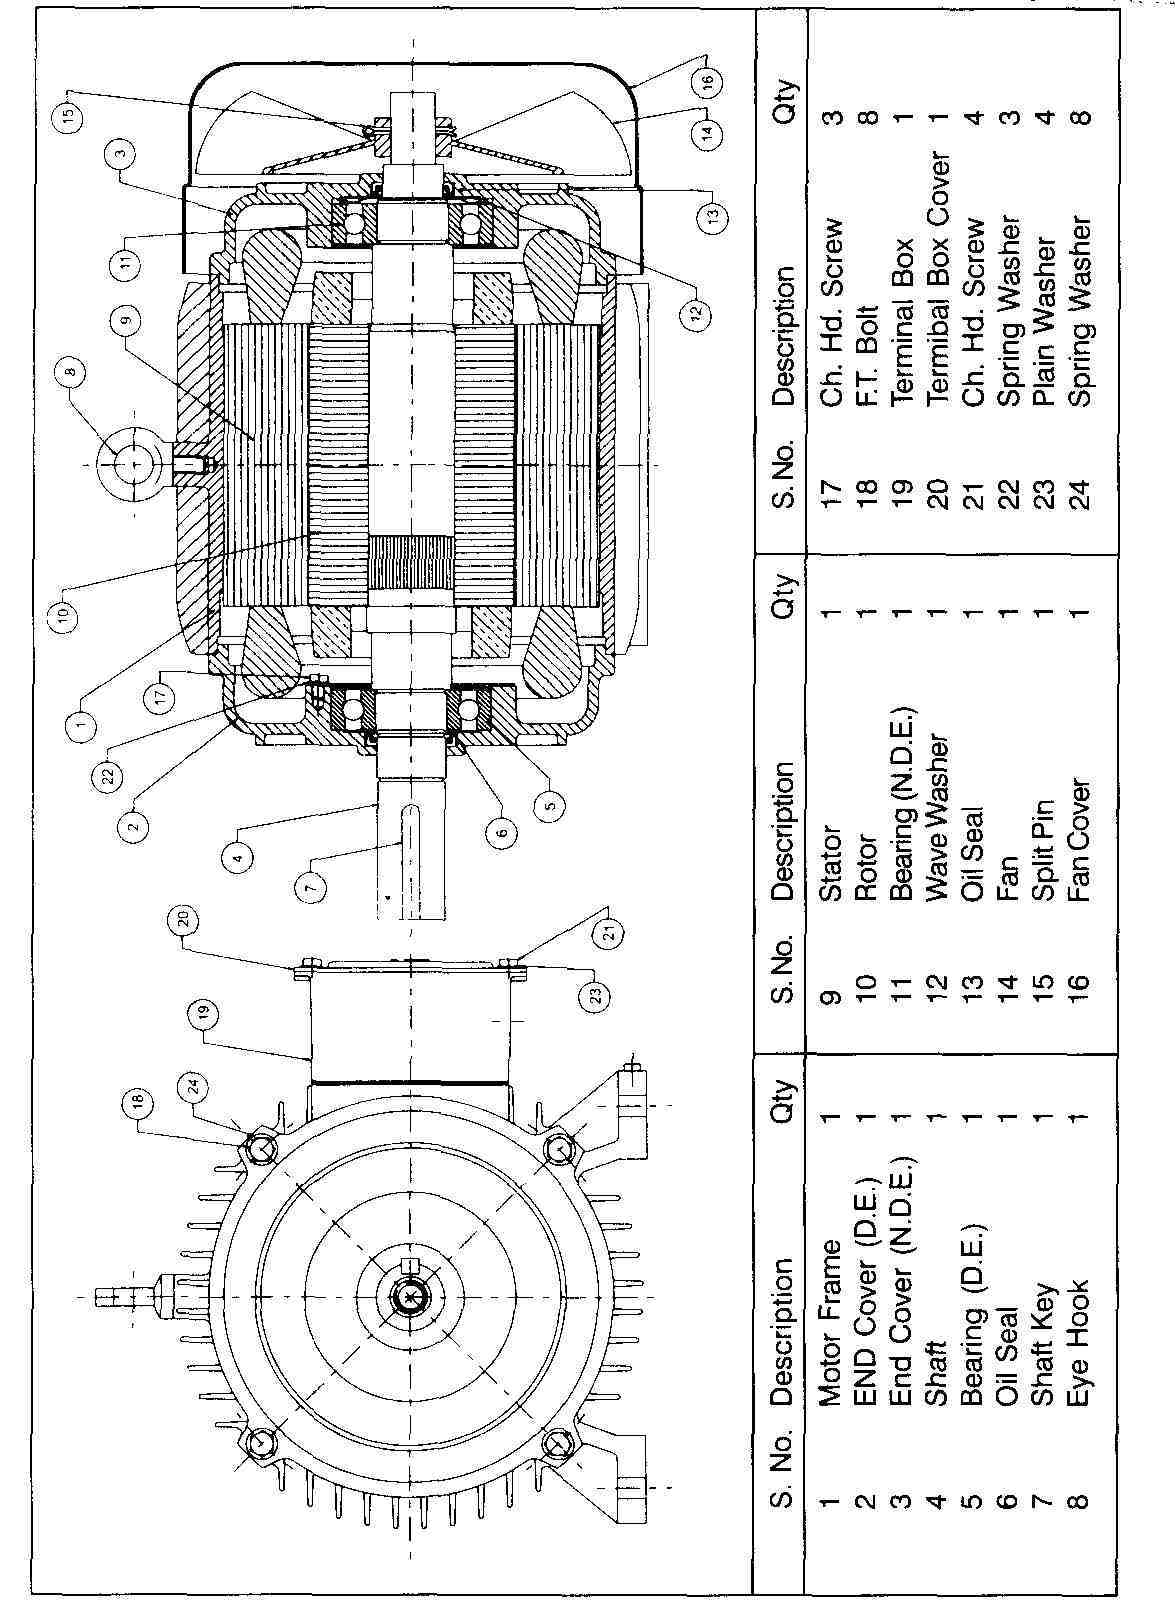 Basic Motorcycle Wiring Diagram Harley Engine Diagram